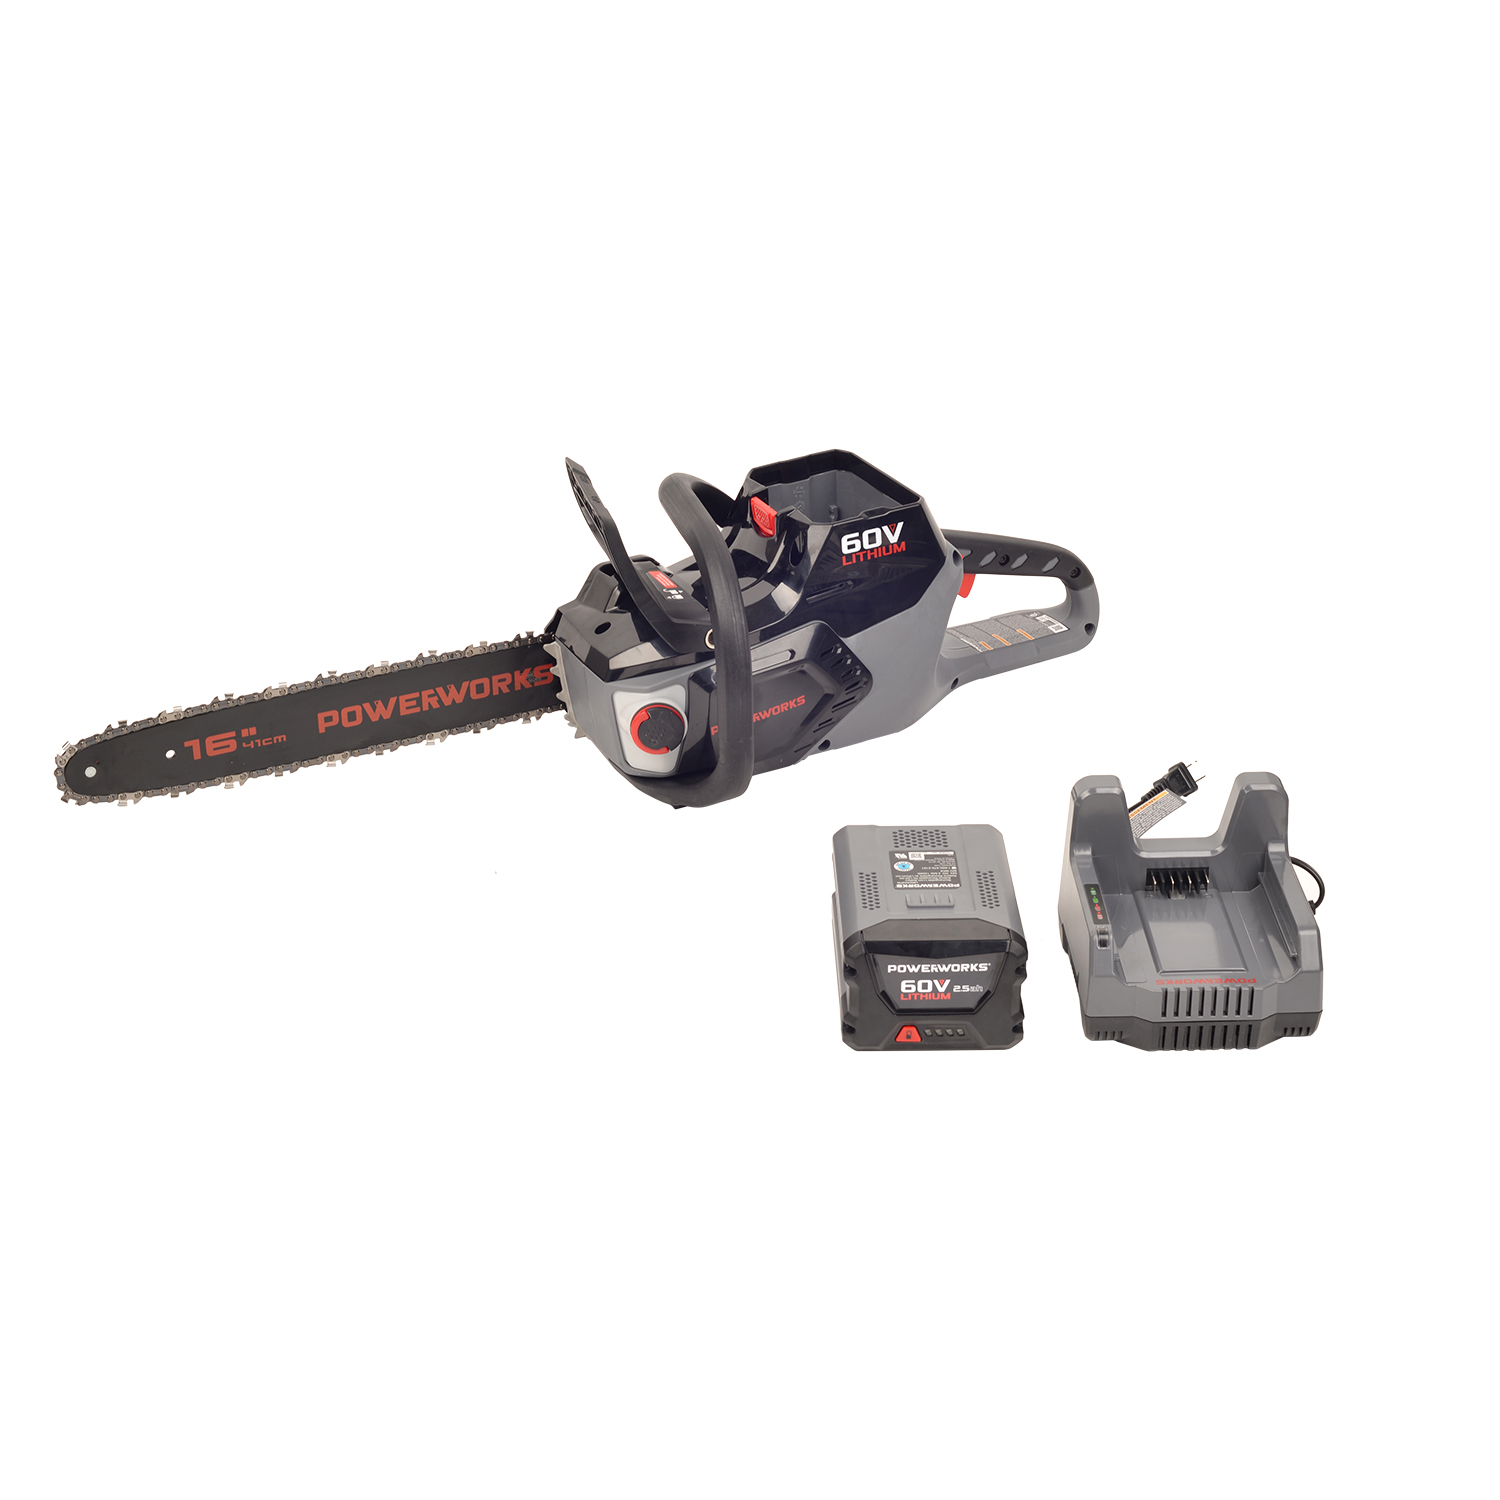 Powerworks 60V Brushless 16-inch Chainsaw, 2.5Ah Battery and Charger Included, 2001413 by Sunrise Global Marketing, LLC